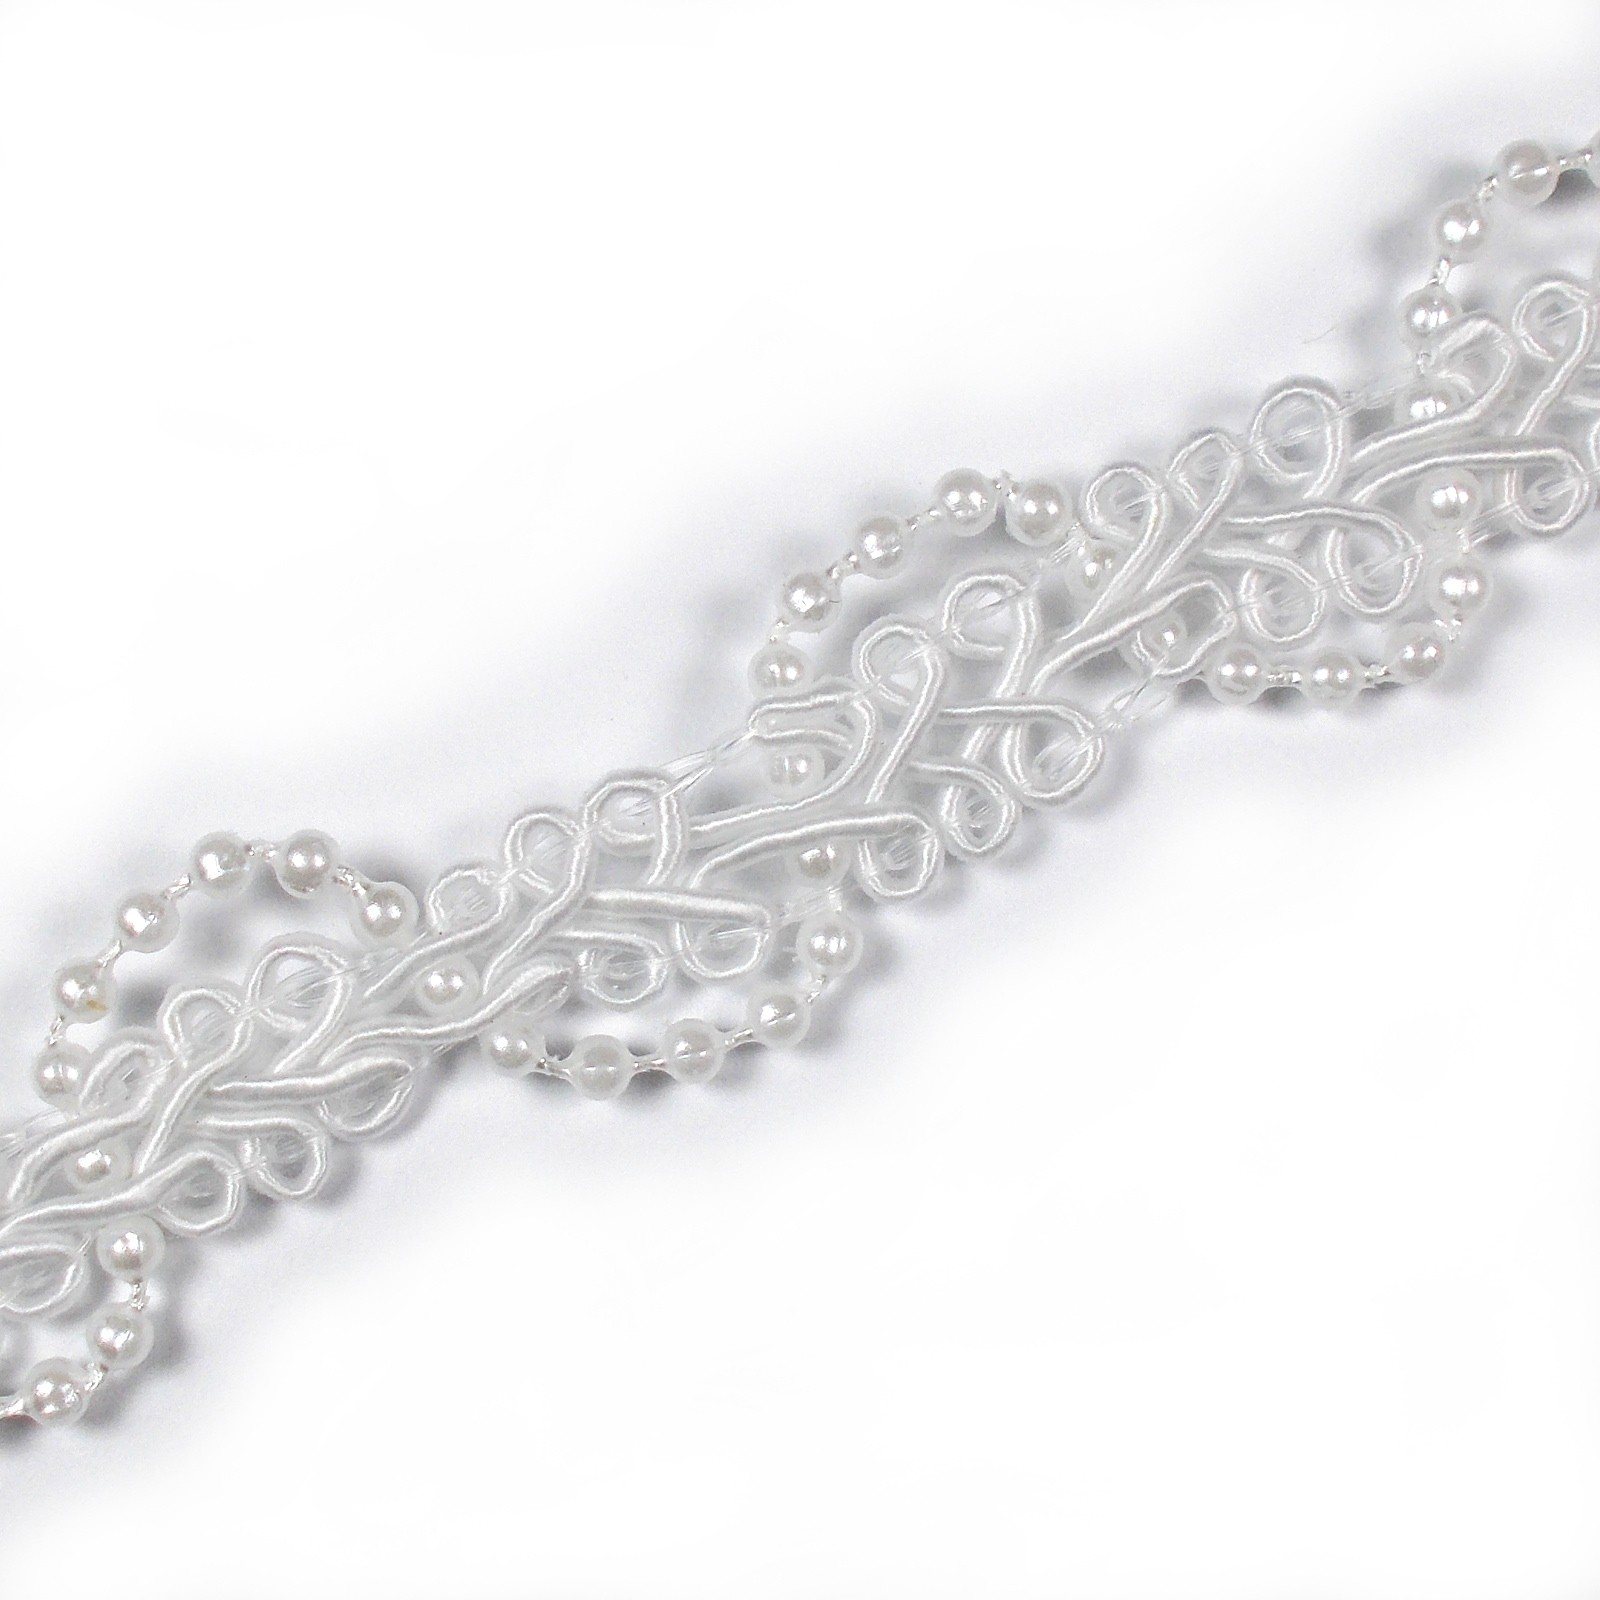 Beaded Braid Lace Trim 2cm wide White 1 metre length